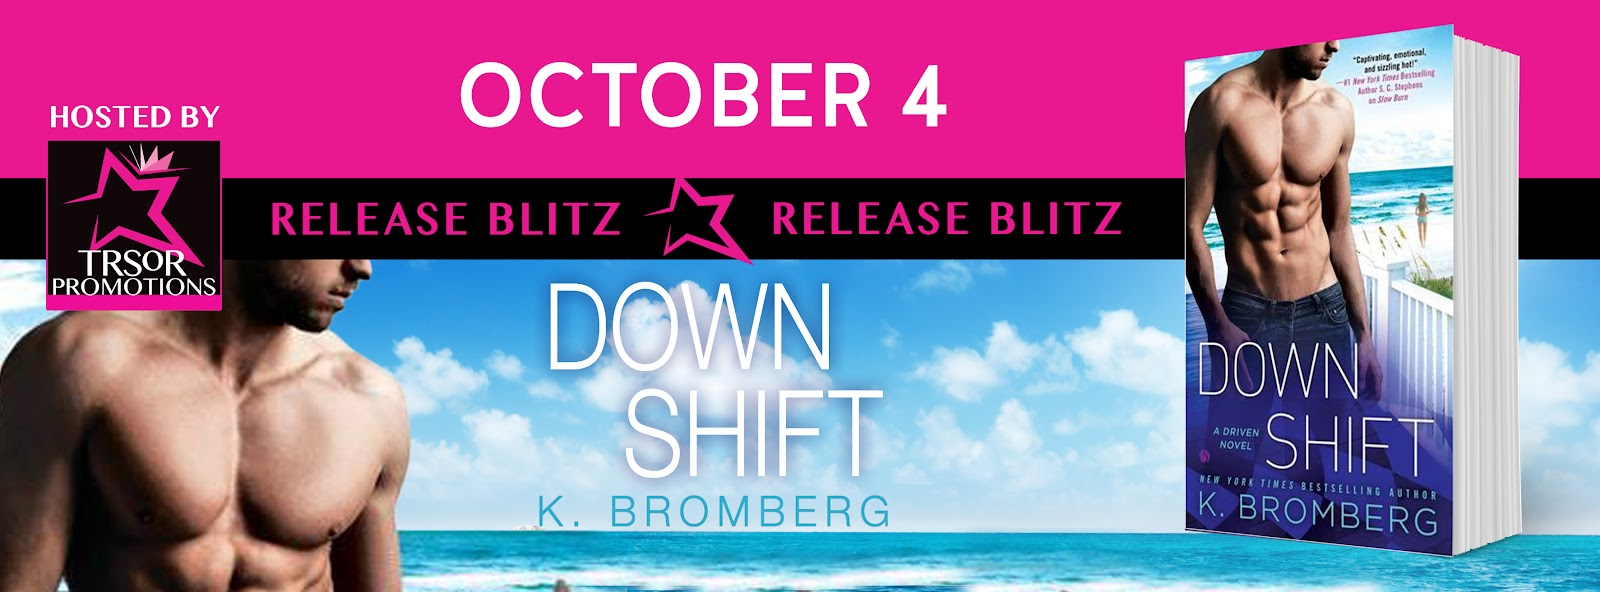 DOWN_SHIFT_RELEASE_BLITZ.jpg